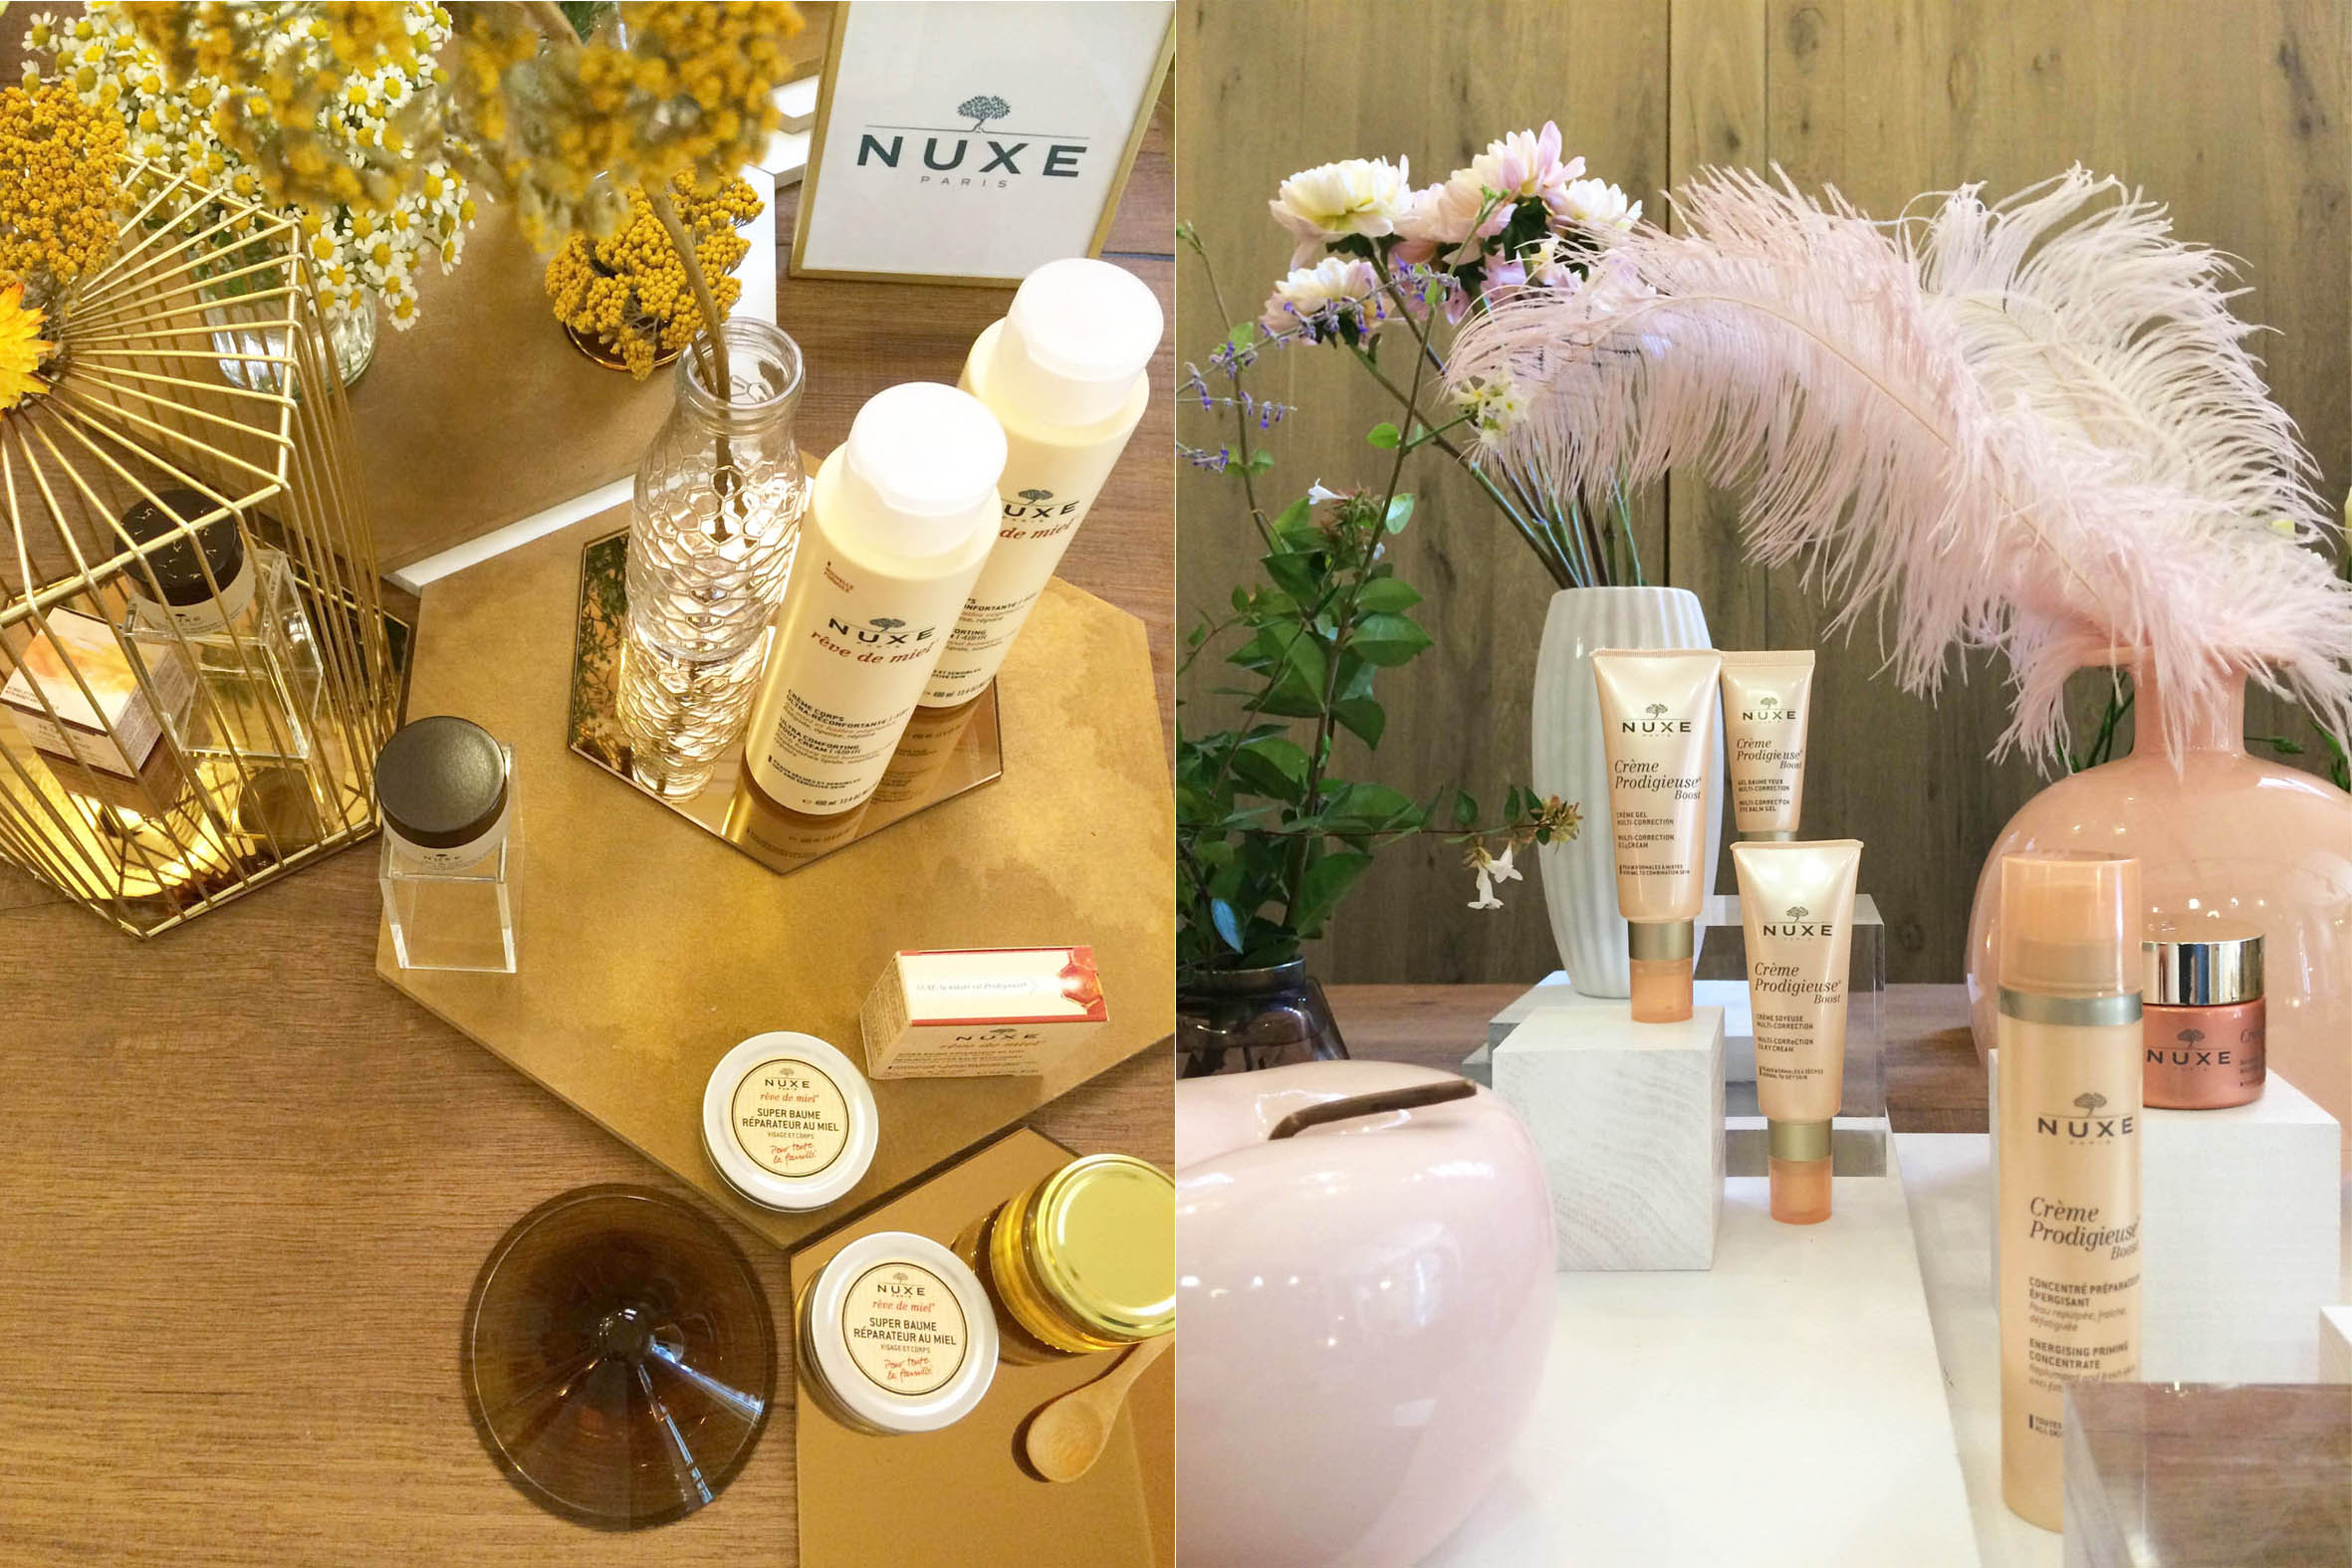 Nuxe pressday Set Styling Project @ MeetLab Milano Brera 07